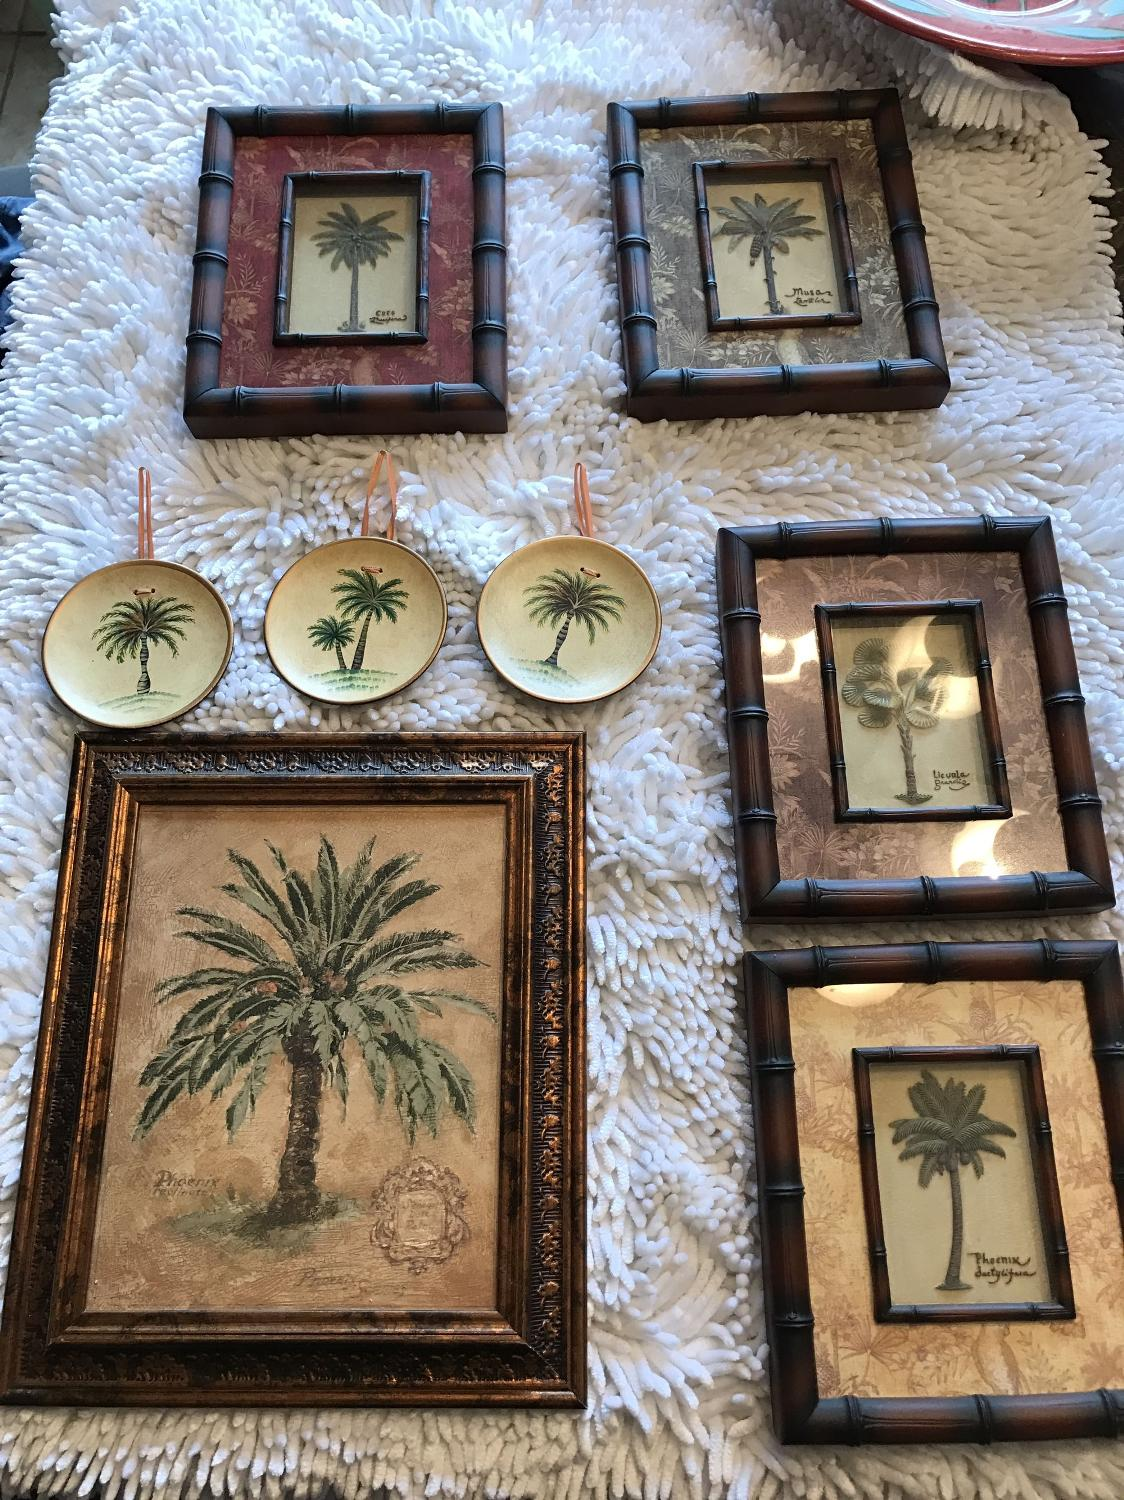 Best Palm Tree Decor For Sale In Hernando Mississippi For